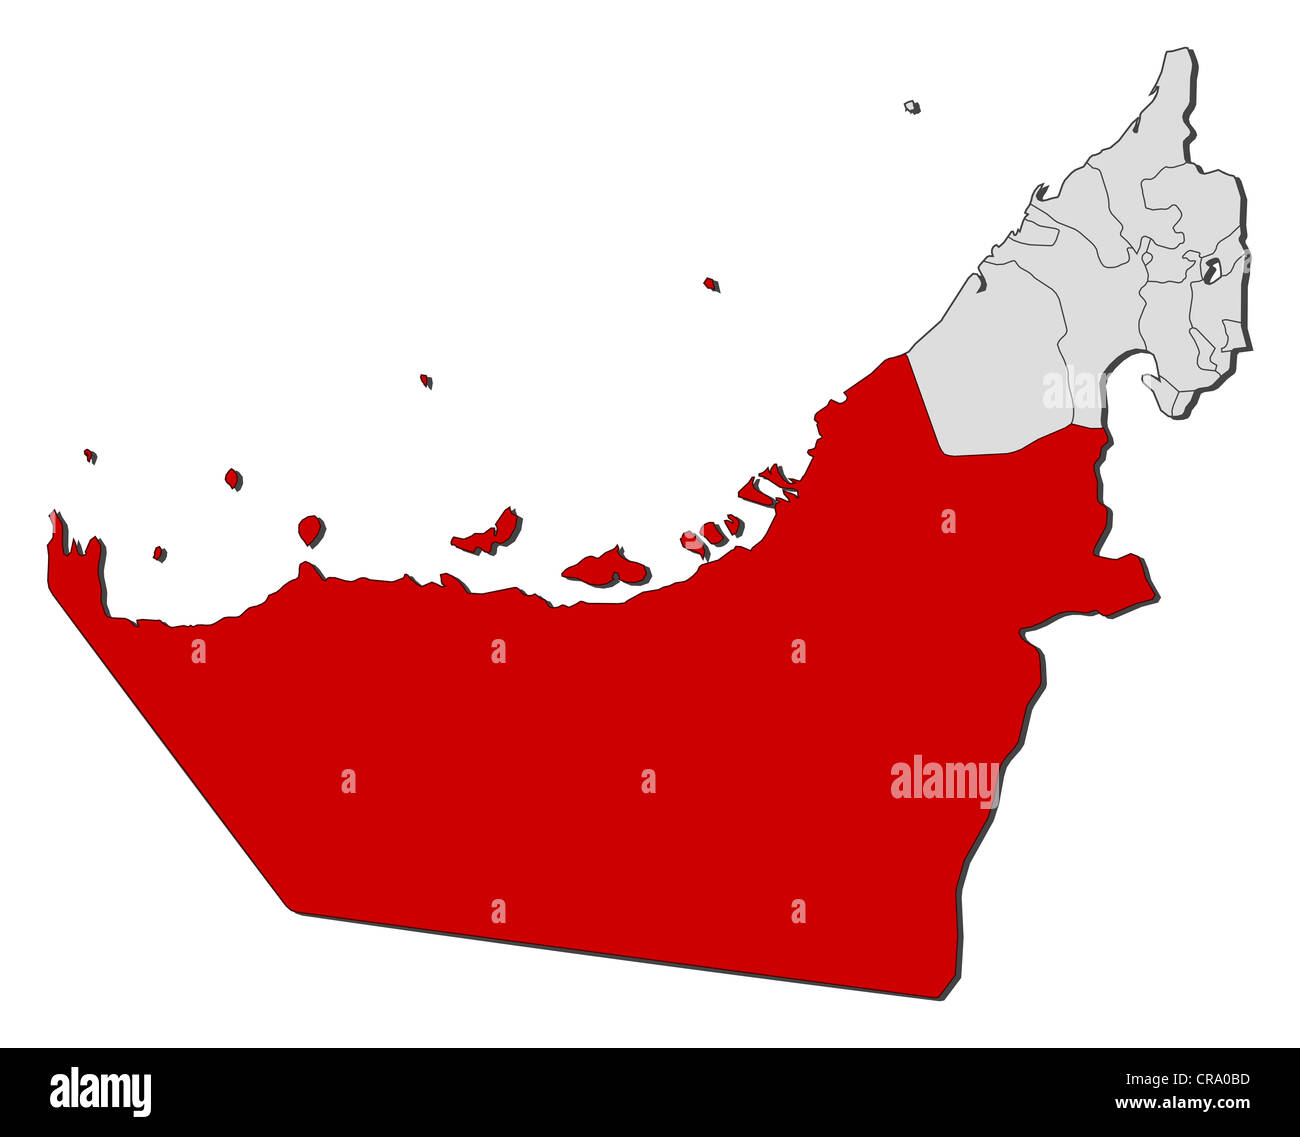 Political map of the United Arab Emirates with the several emirates where Abu Dhabi is highlighted. - Stock Image